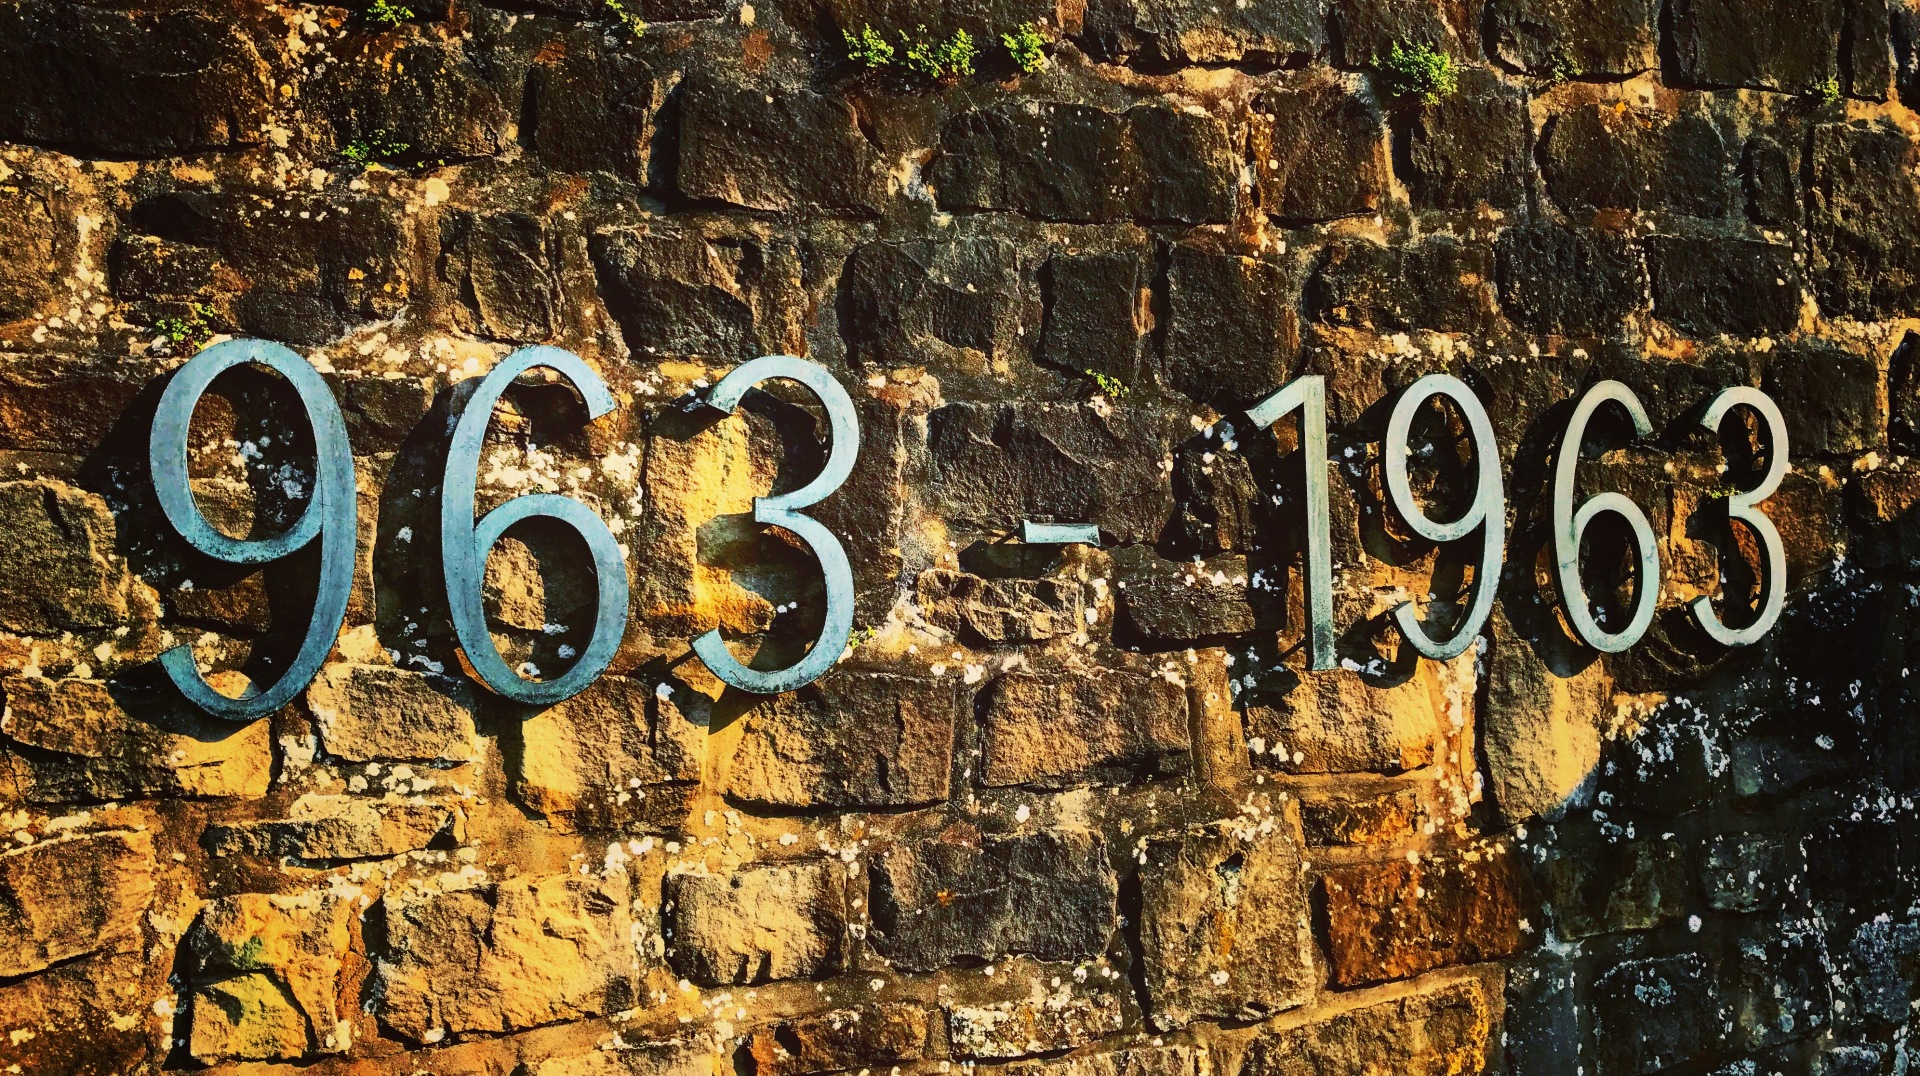 An inscription on the Bock promontory in Luxembourg City, commemorating a thousand years of History.